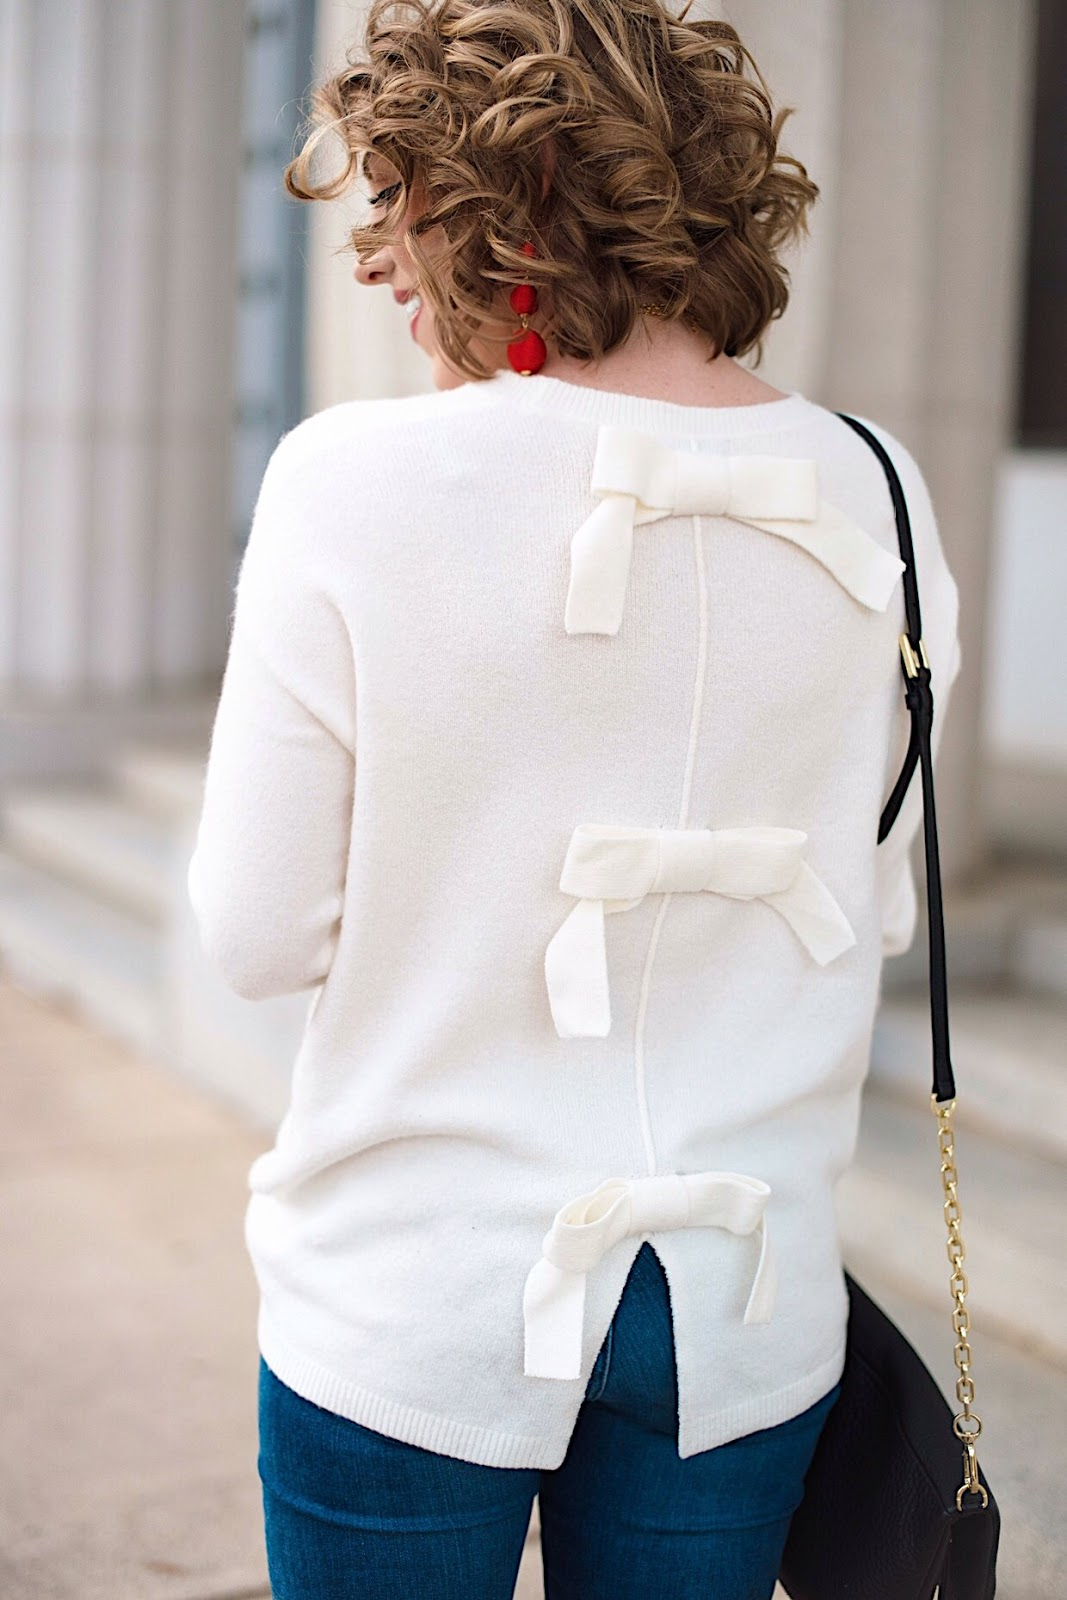 Bow Back Sweater - Click through for more on Something Delightful Blog